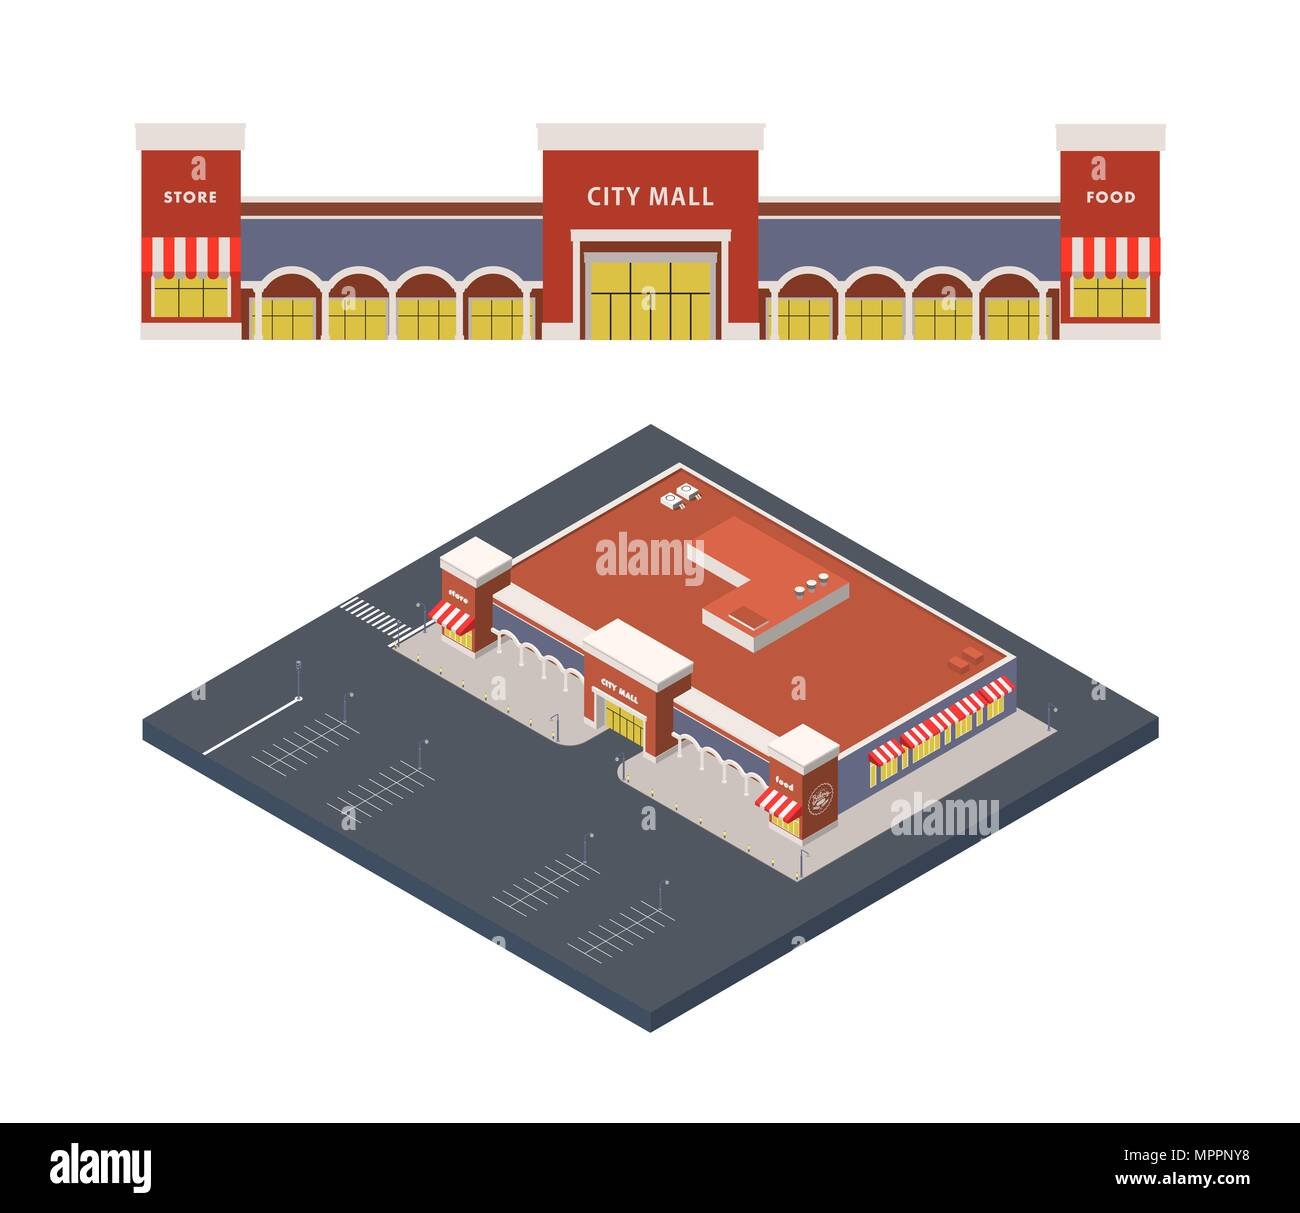 Vector Isometric illustration of shopping centre, city mall with parking lot - Stock Image